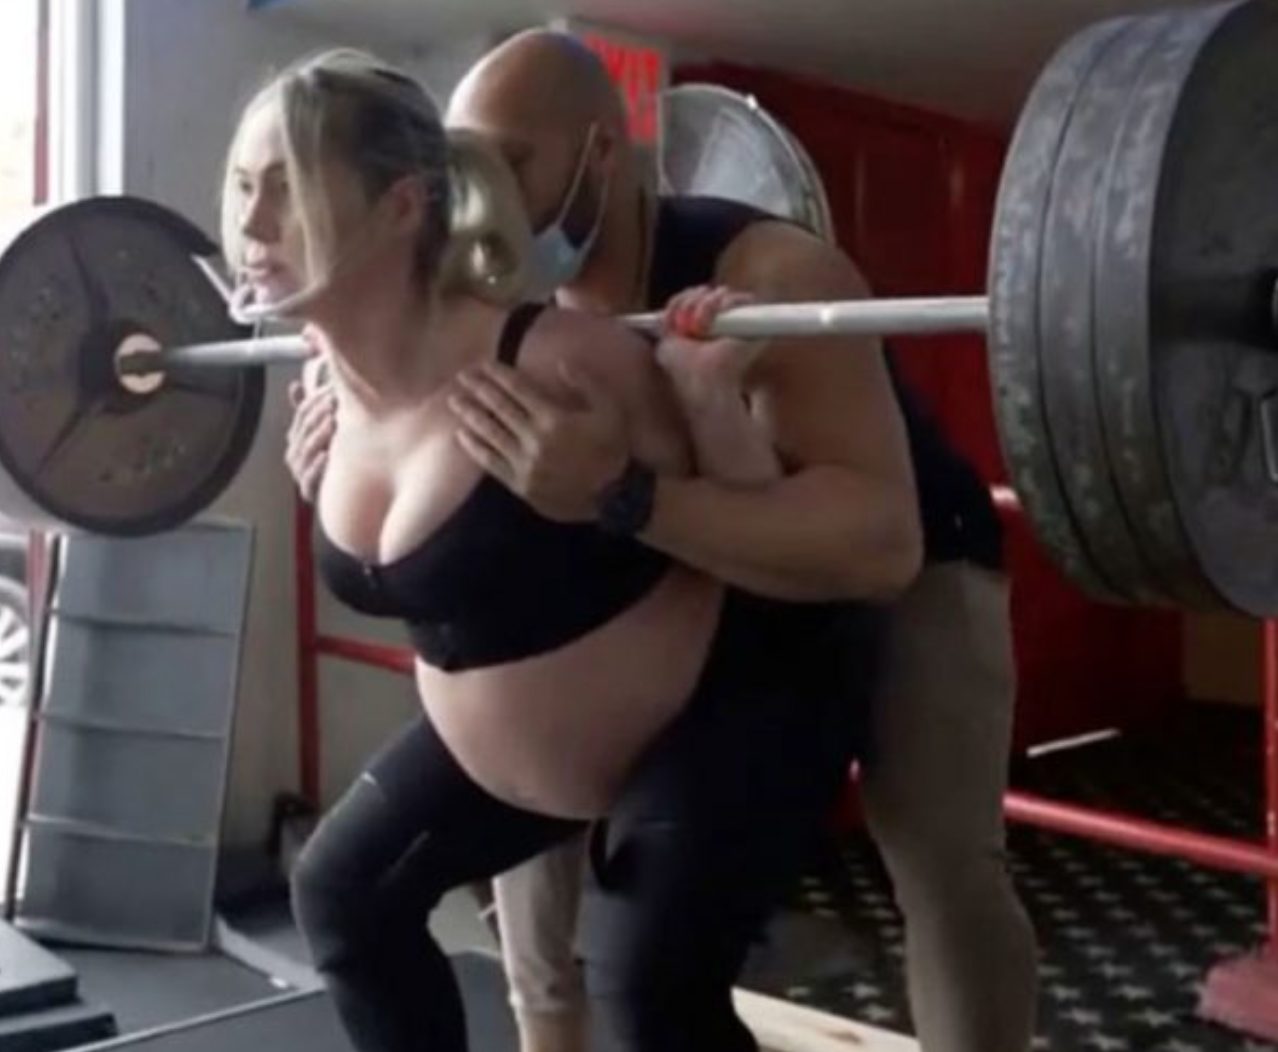 Pregnant Woman Posts Photo Lifting 315 Pounds, And the Jealous Instagram Trolls Come Crawling